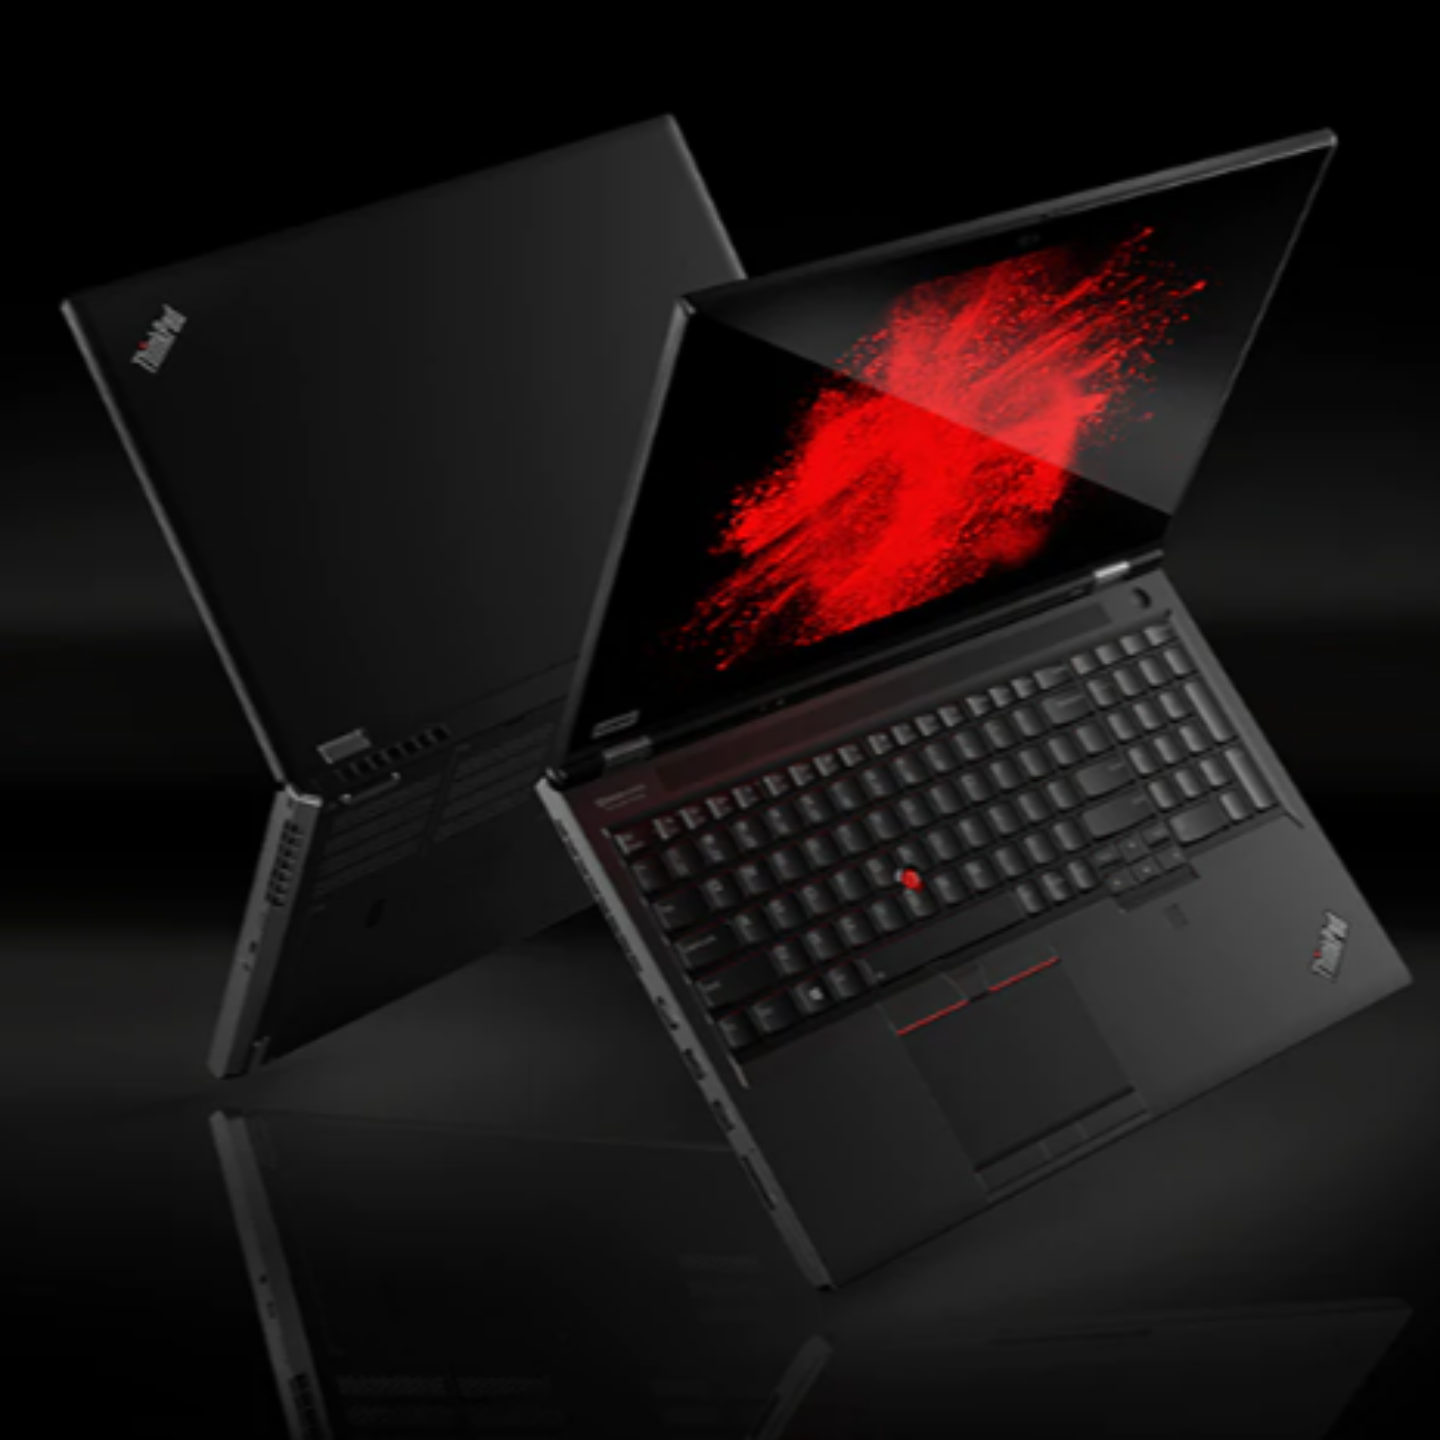 LENOVO THINKPAD P53 MOBILE WORKSTATION